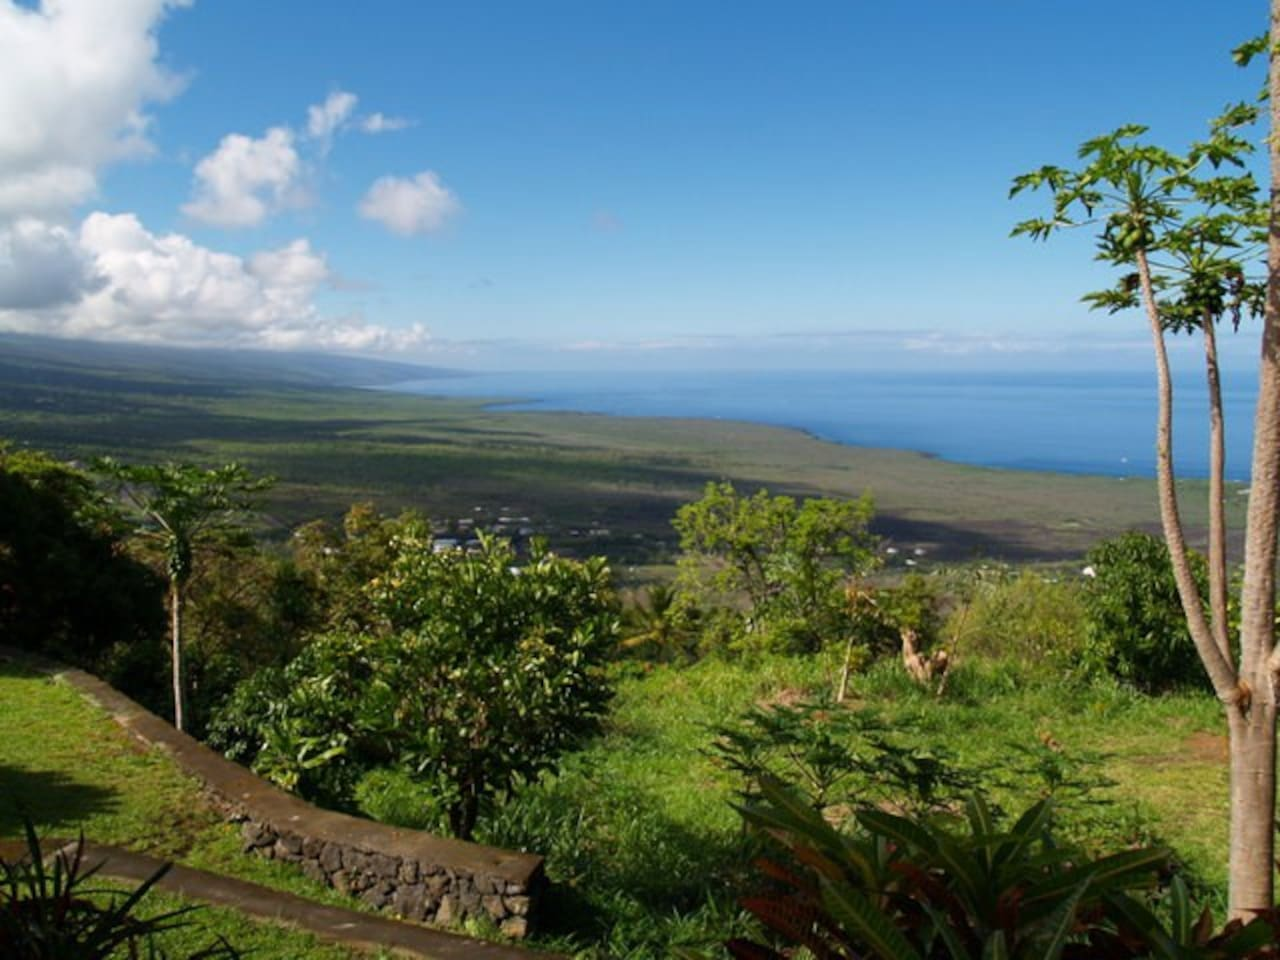 South Kona Coastline